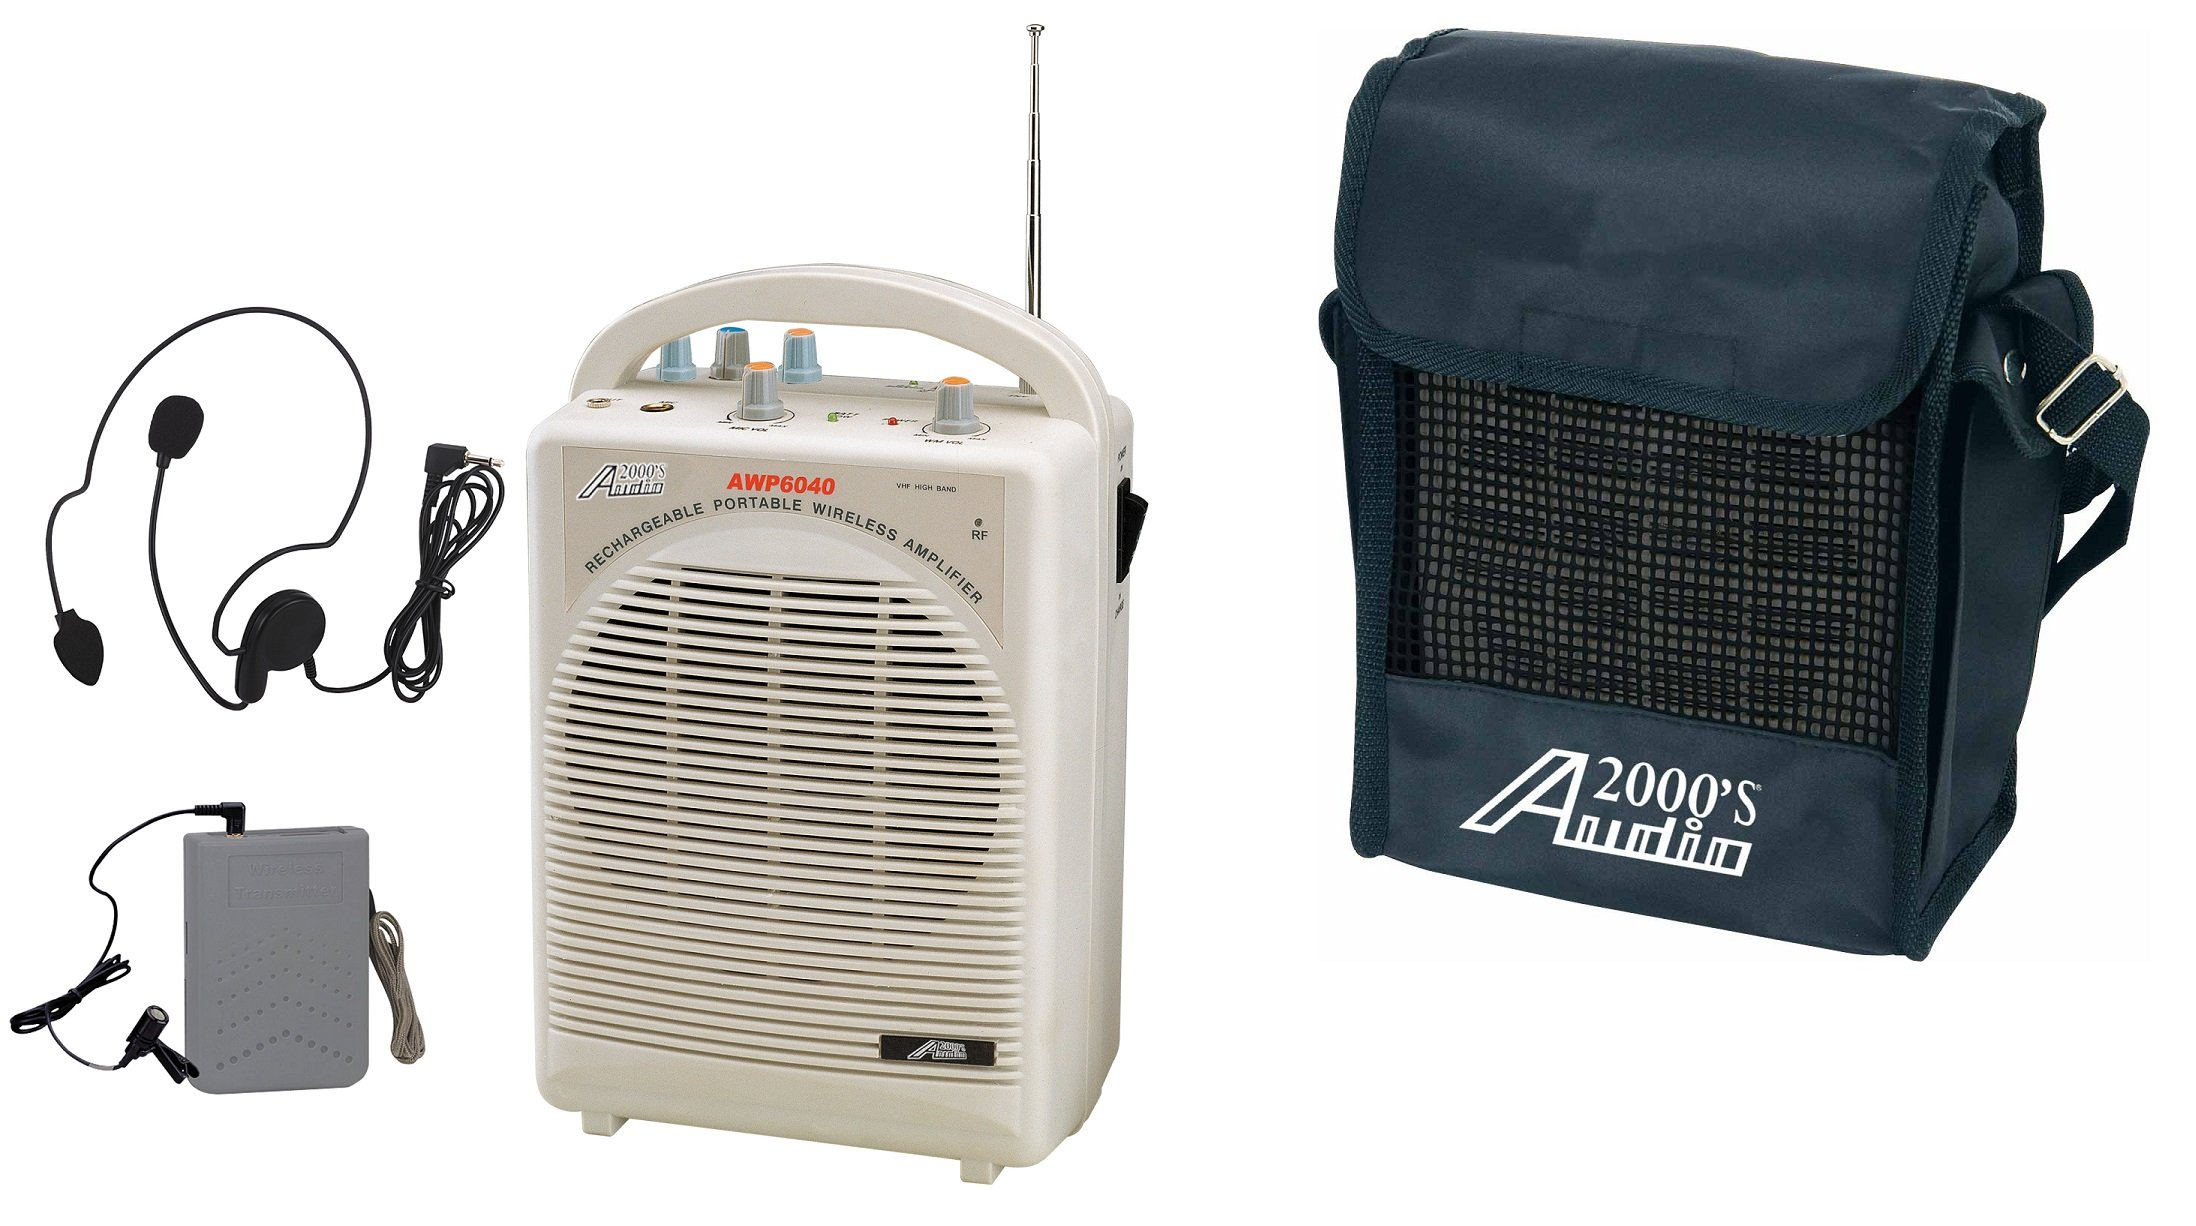 Audio2000'S AWP6040 Portable, Rechargeable PA System